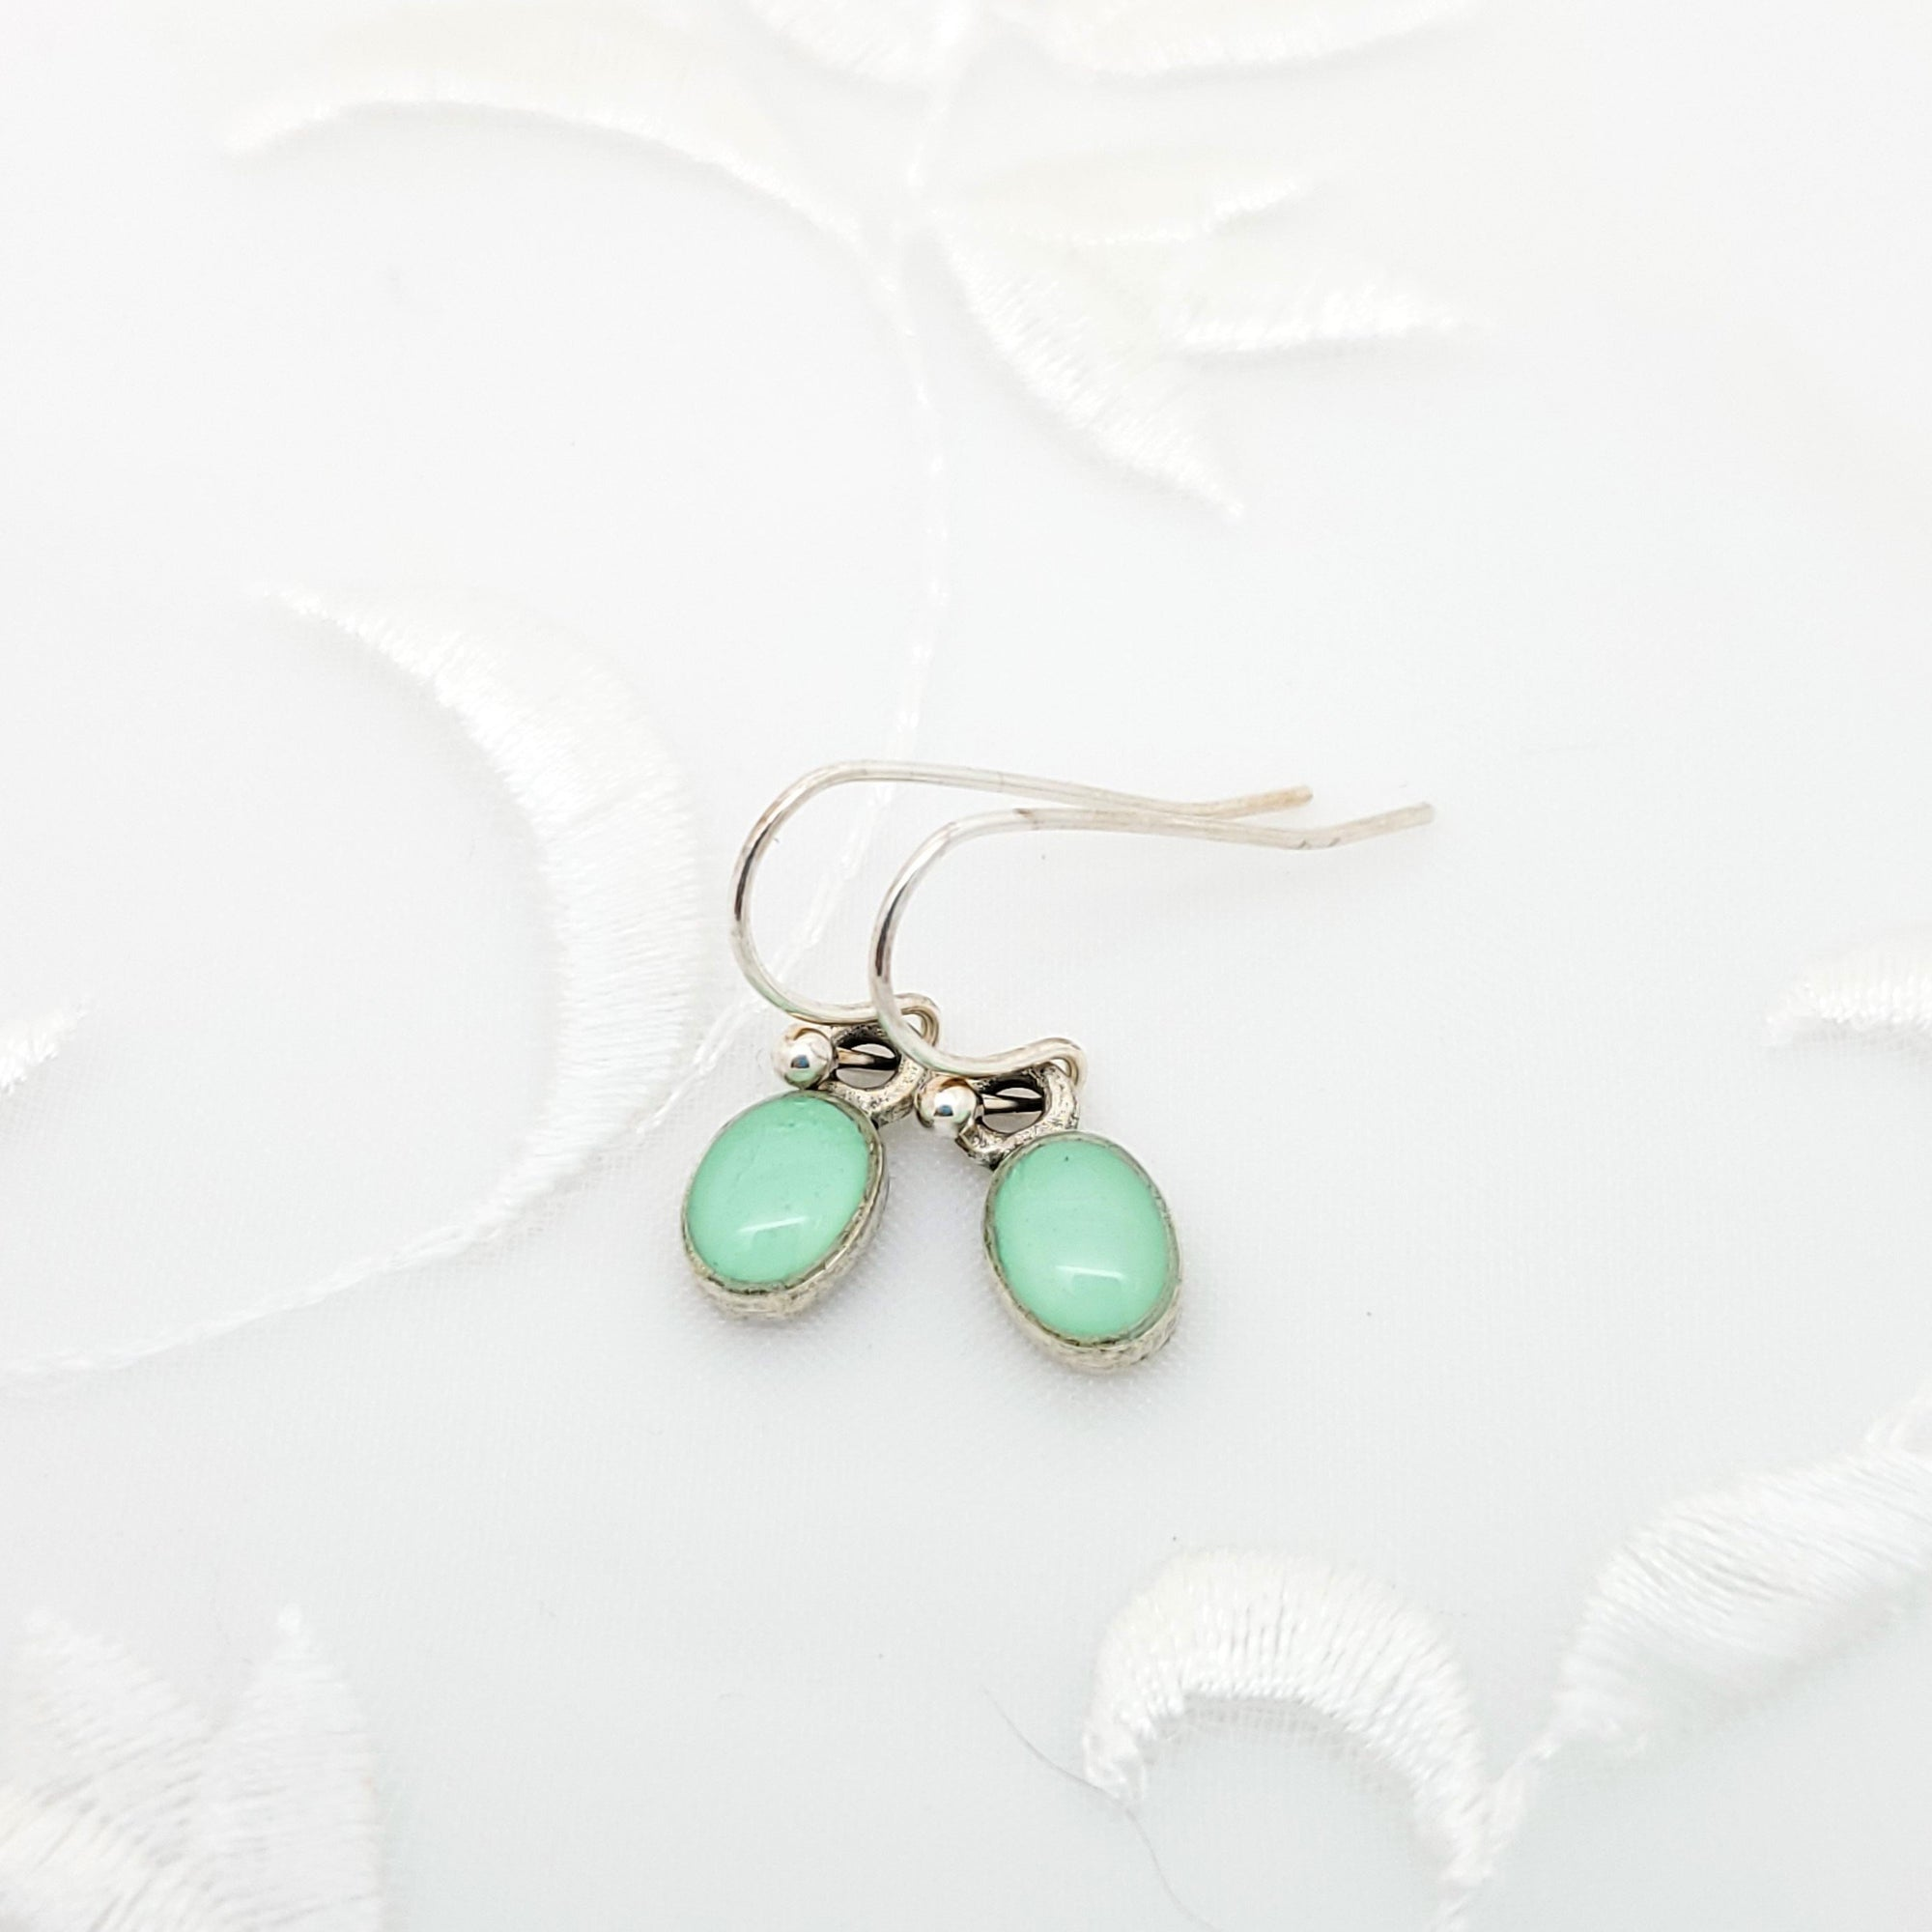 Antique Silver Tiny Oval Earrings with Mint Green Resin